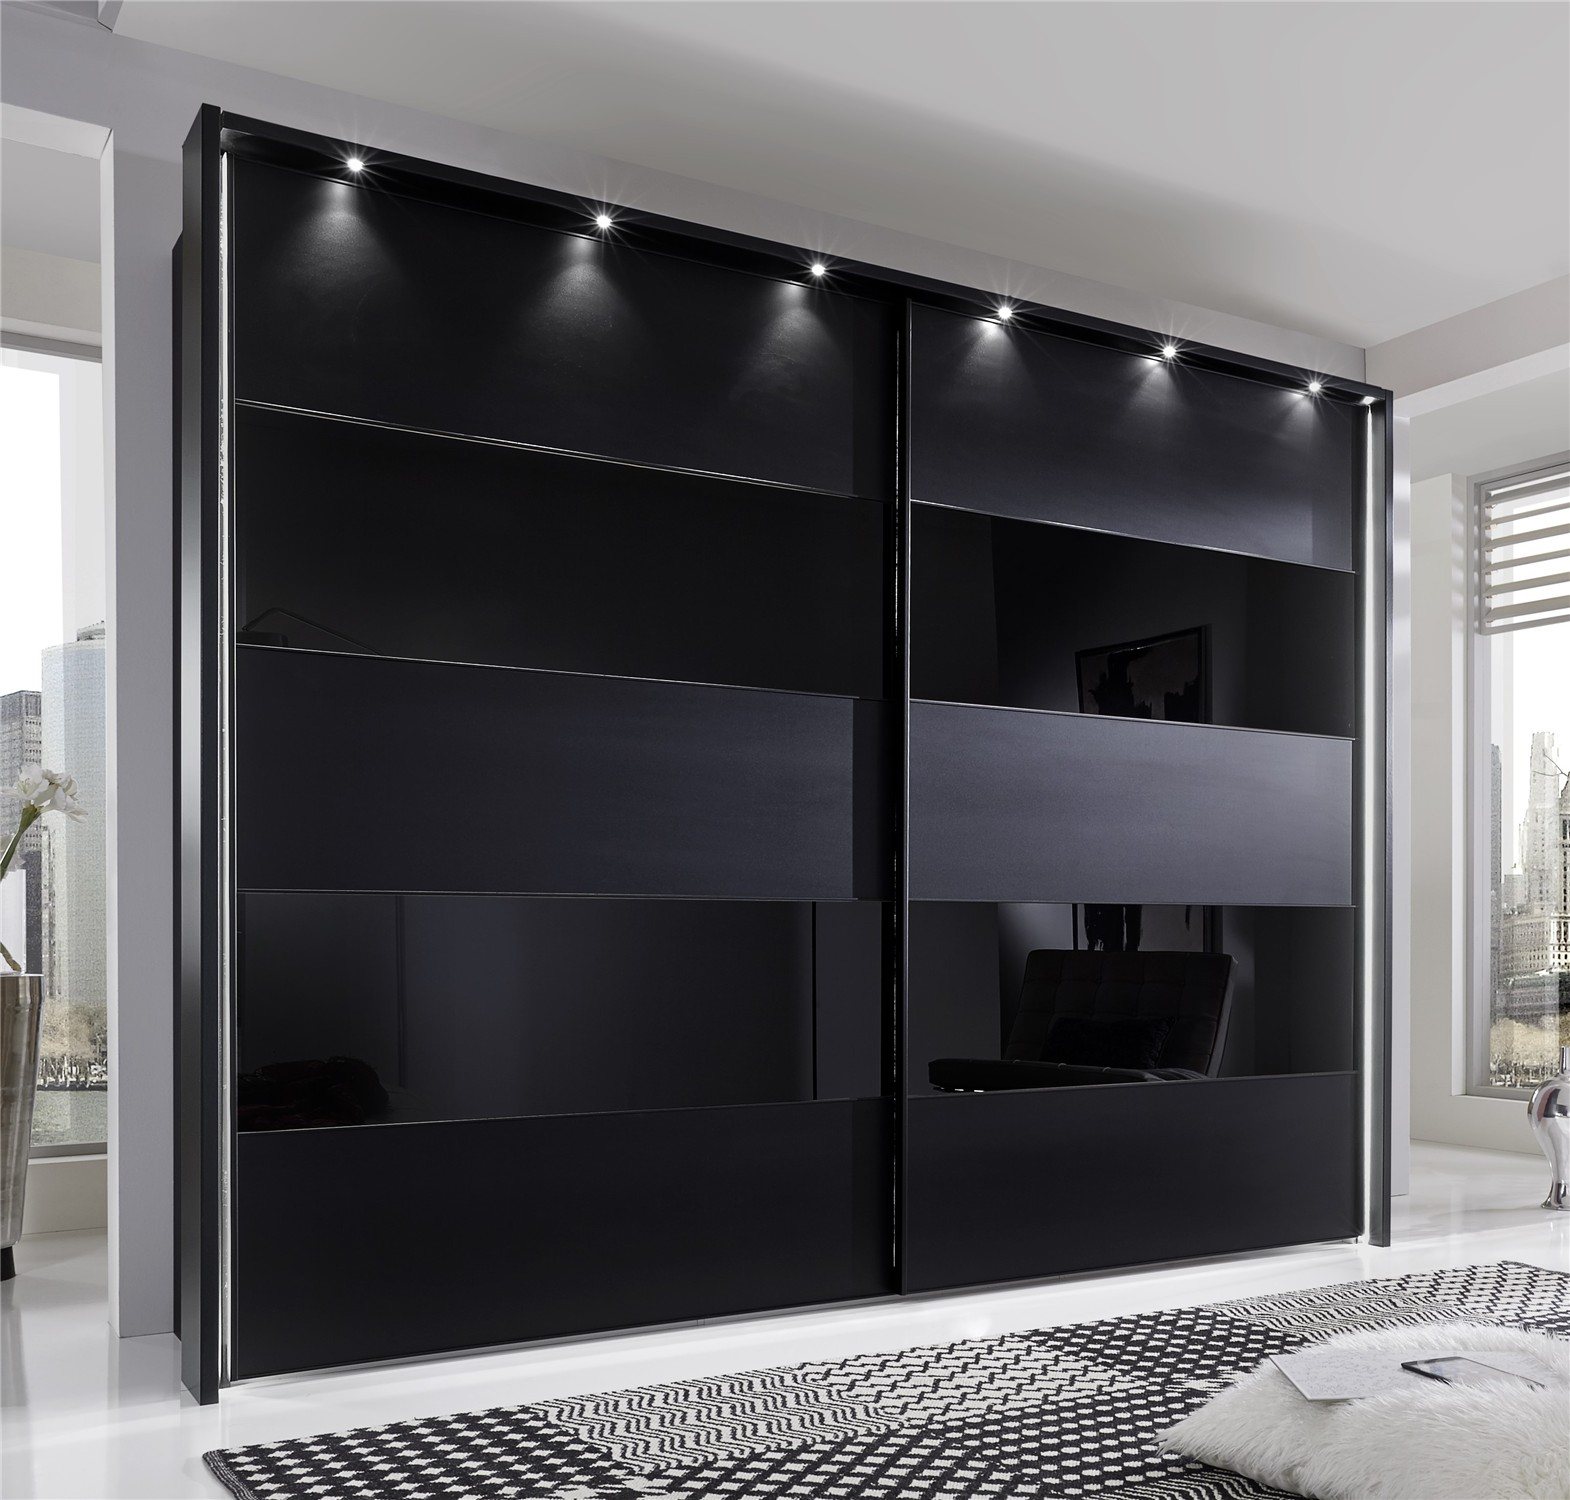 Phoebe by stylform black matt glass wardrobe head2bed uk for Black sliding glass doors